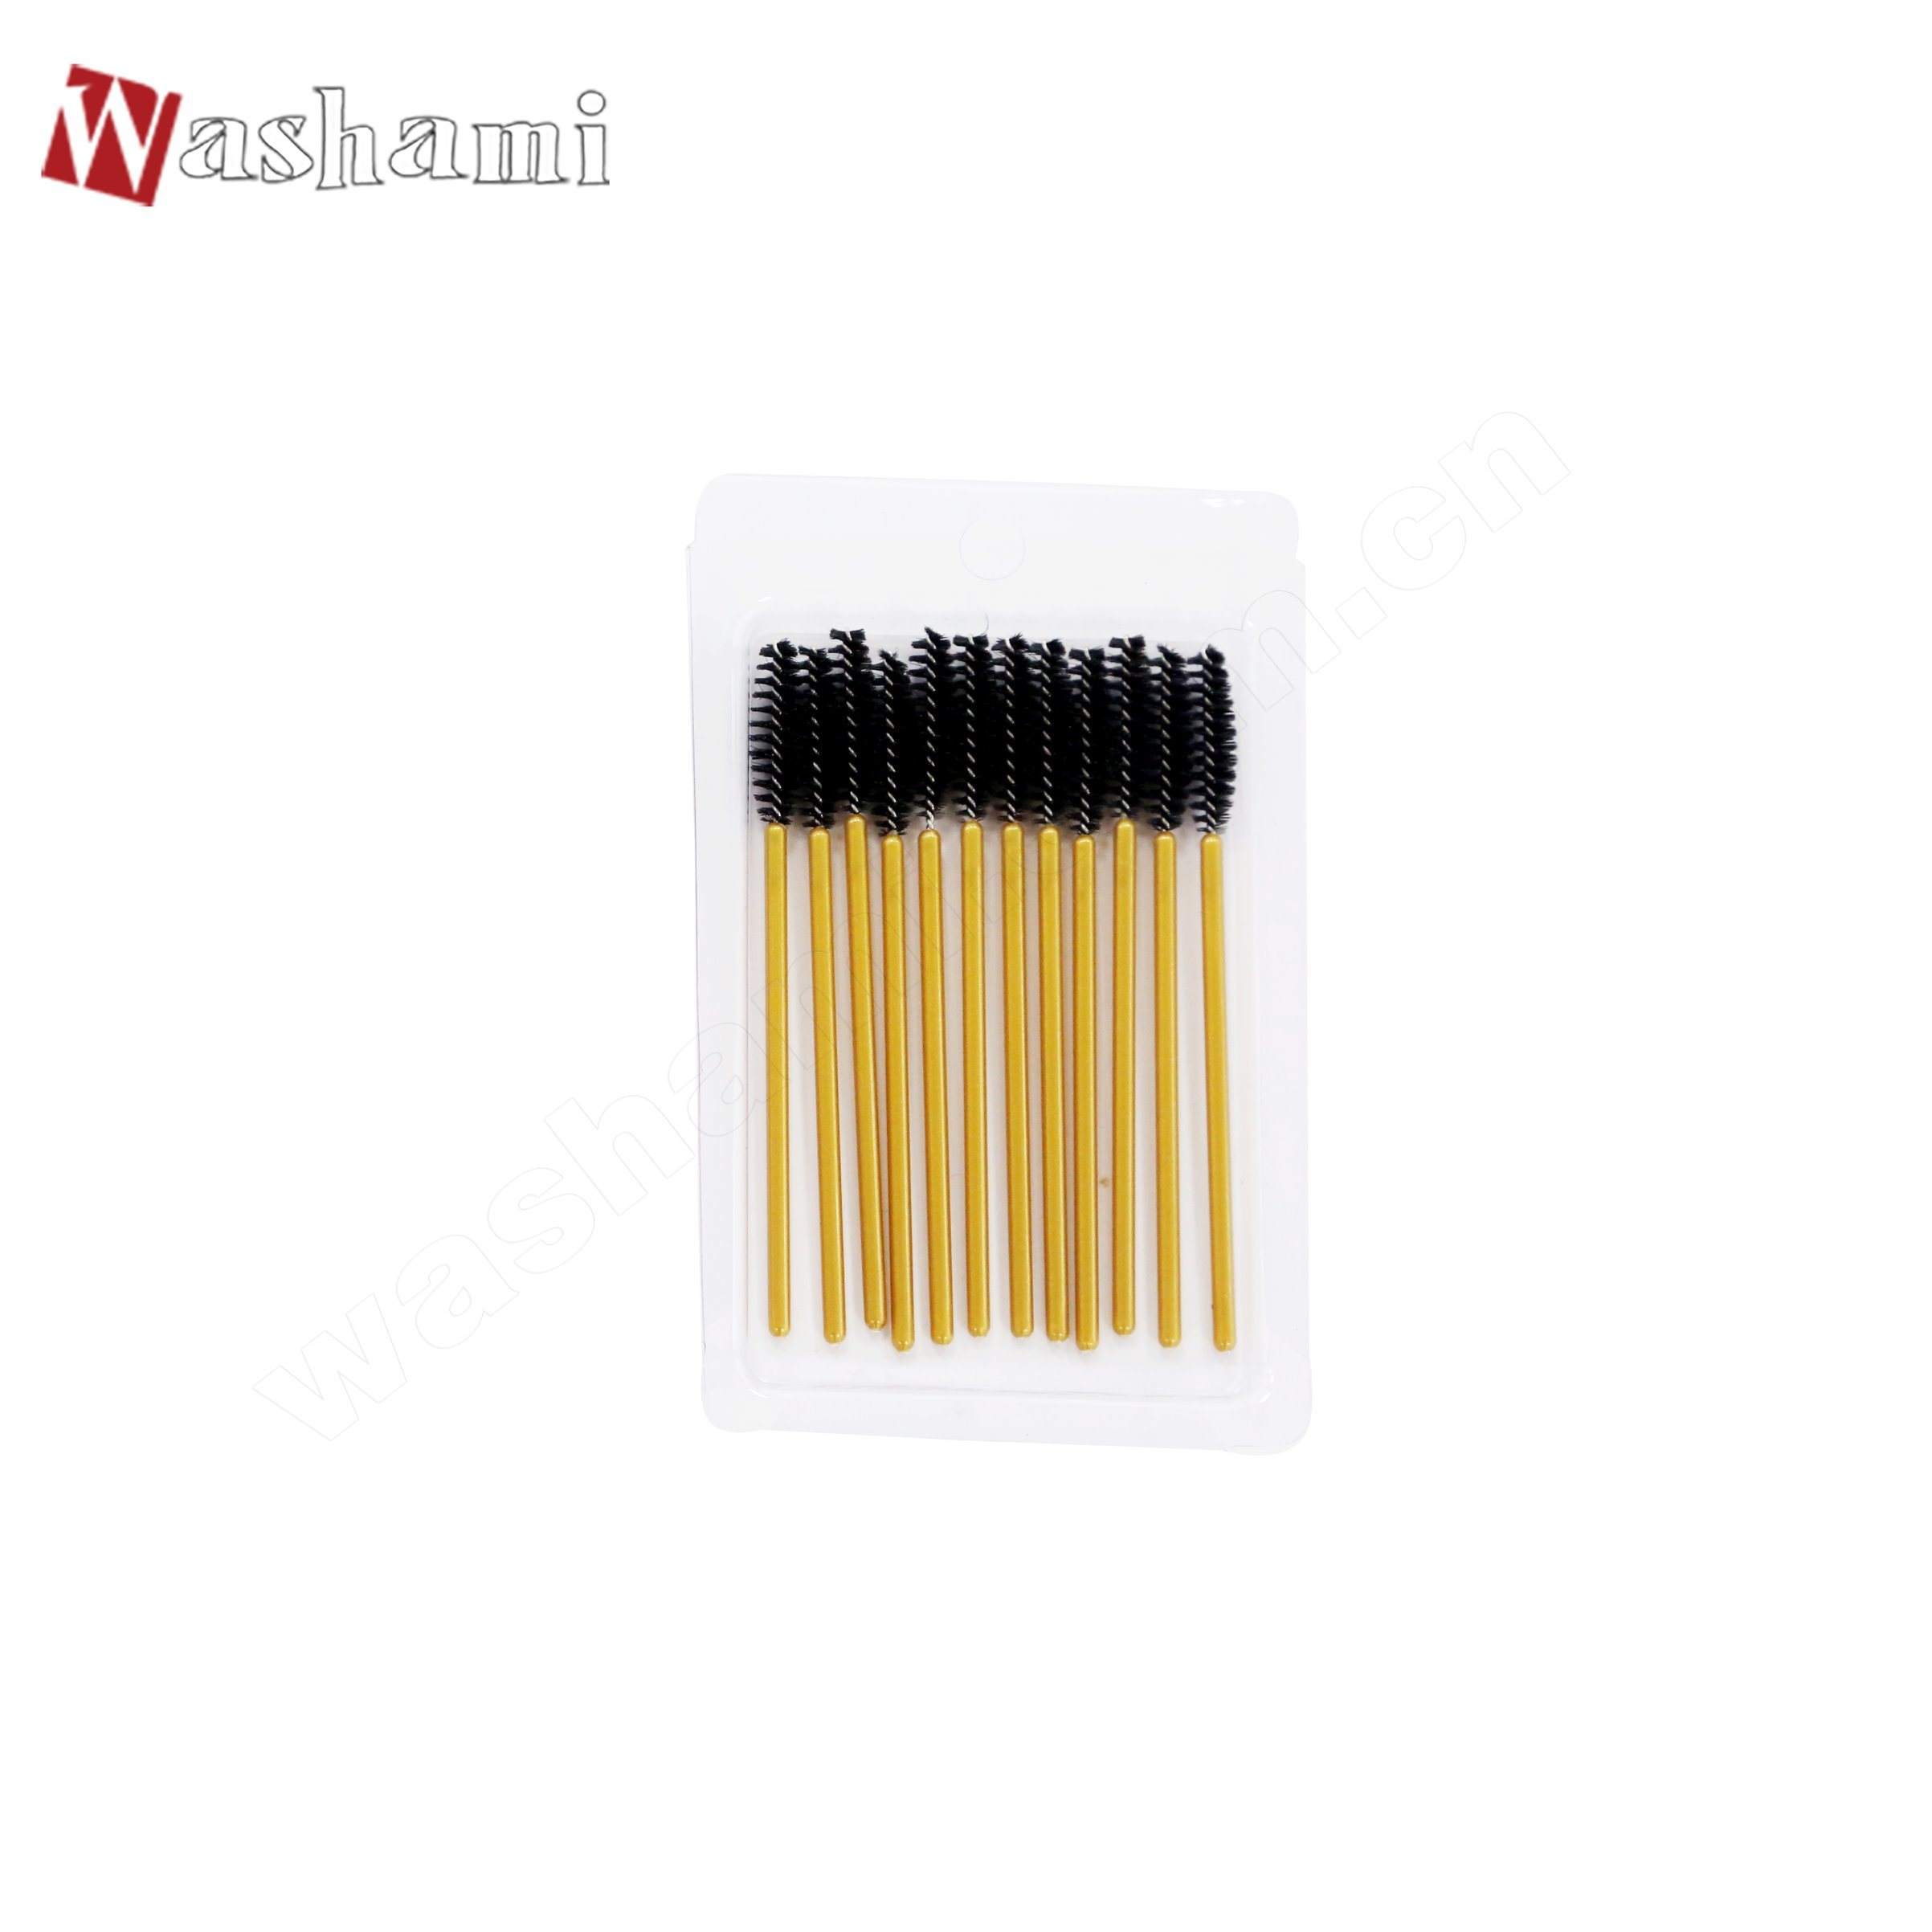 Washami 12PCS Mascara Brush Custom Makeup Brush Set pictures & photos